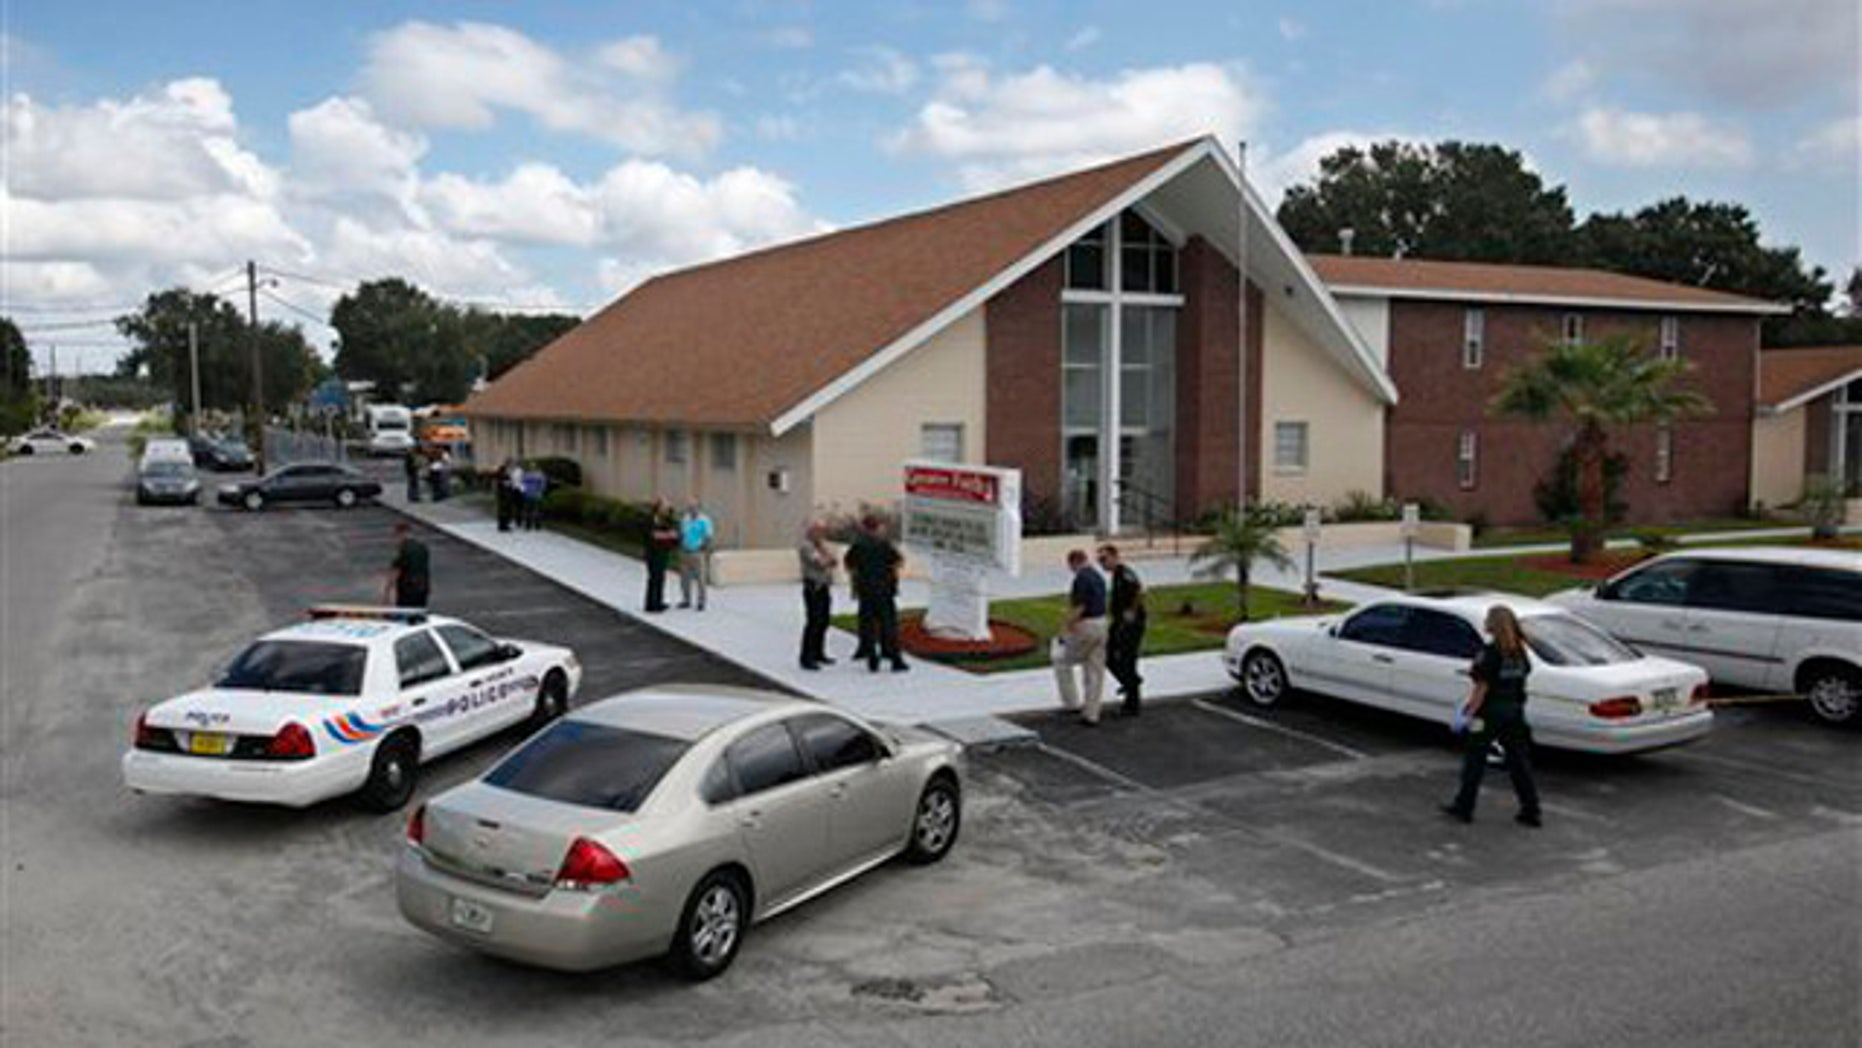 Lakeland Police and Polk County Sheriff's Deputies investigate a shooting in Lakeland, Fla. on Sunday, Sept. 18, 2011